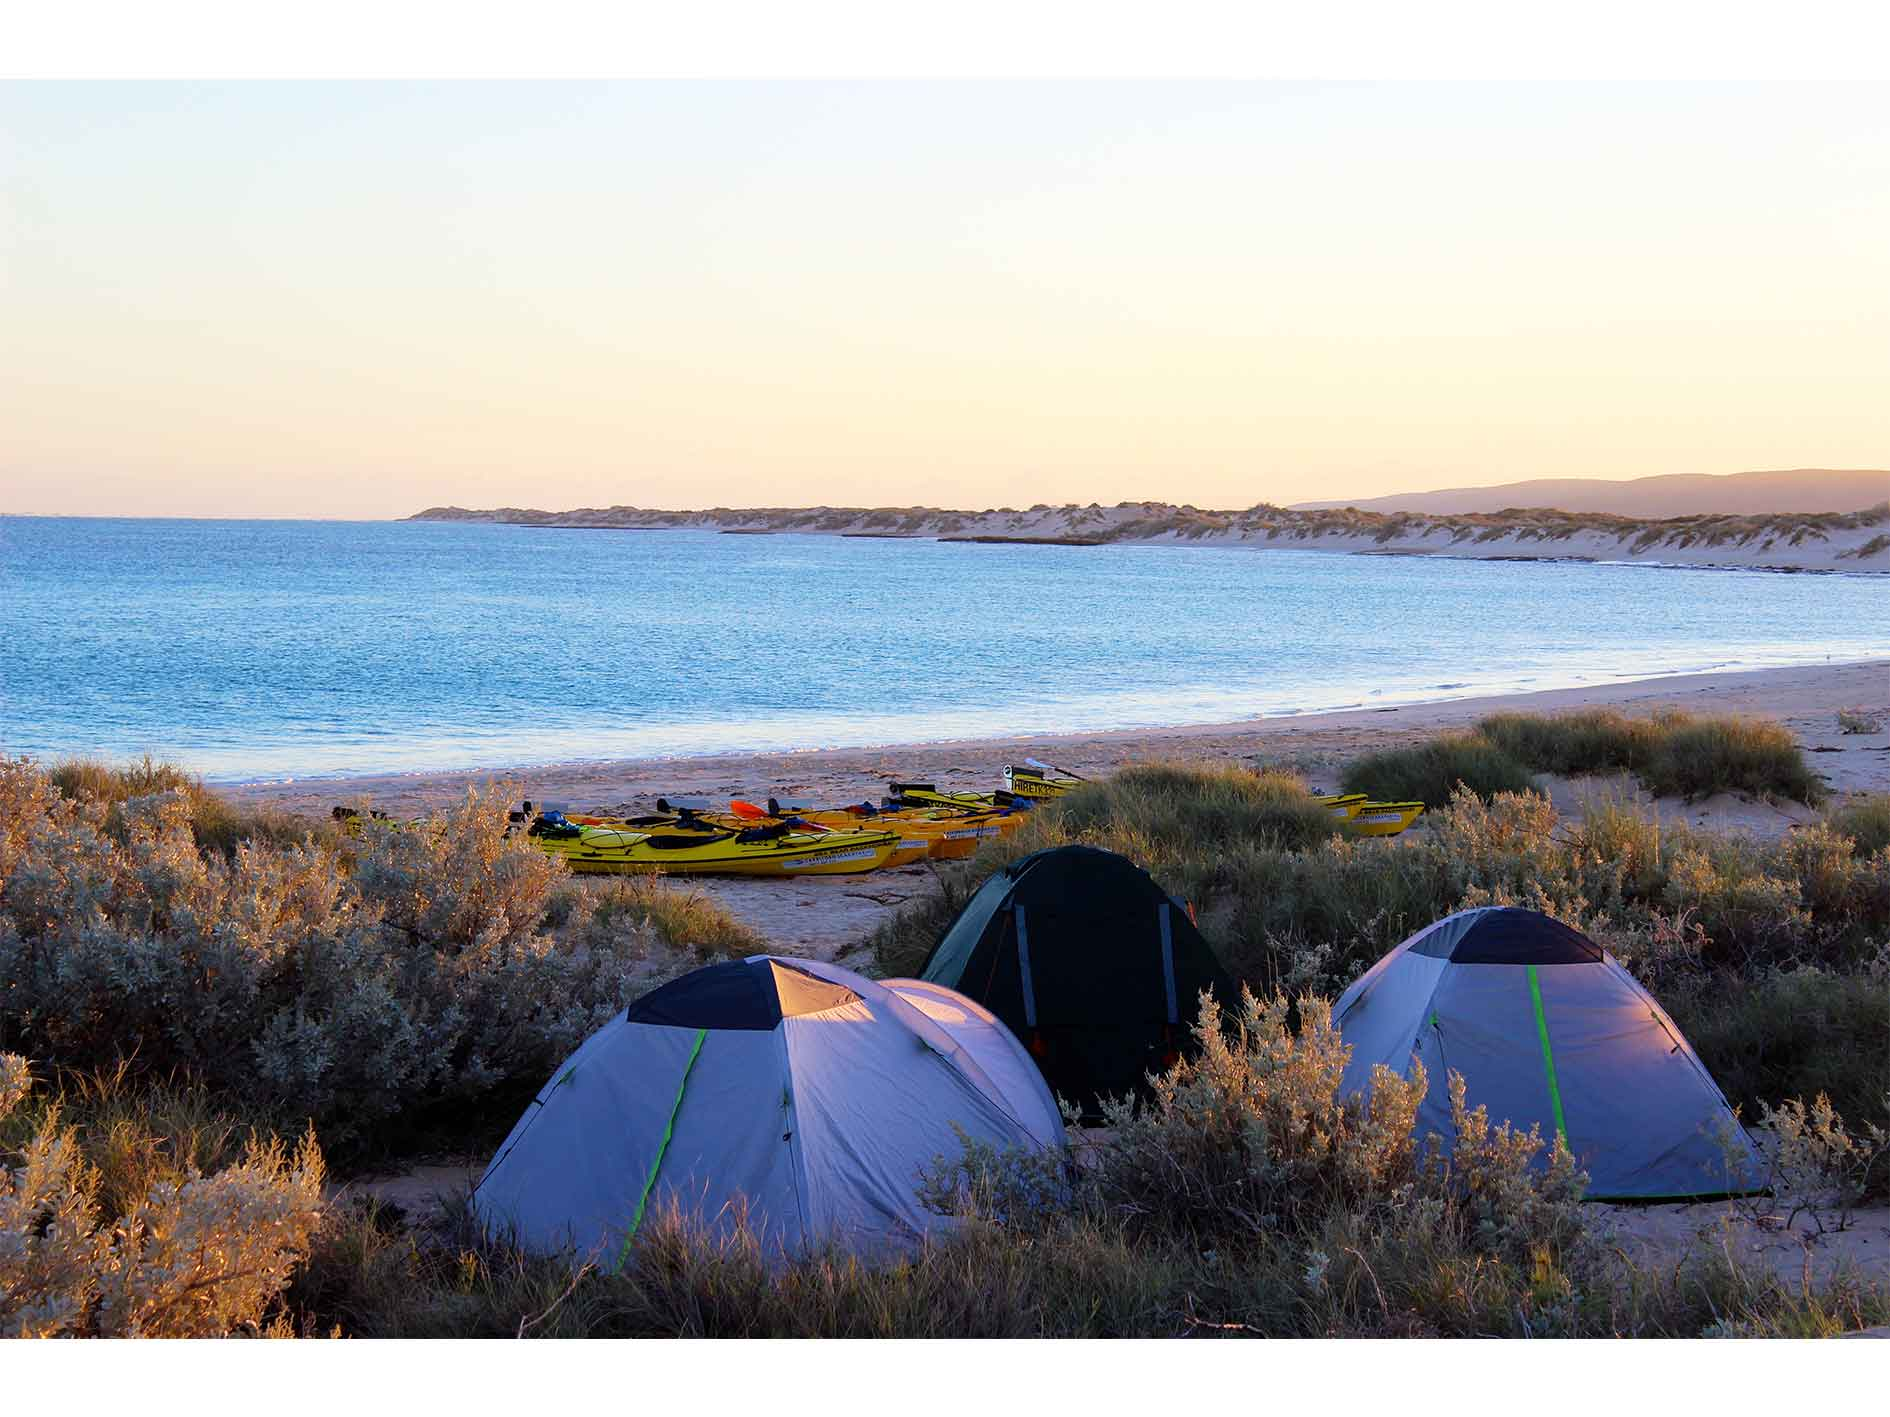 3 day Reef and Beach tour, multi day tour Exmouth, sea kayak Ningaloo, camping tour Exmouth, 4 day Reef and Beach & Whale Shark Adventure Package, kayak, snorkel, beach camp, Ningaloo Reef, Cape Range National Park, eco tour, Exmouth Adventure Co, Western Australia